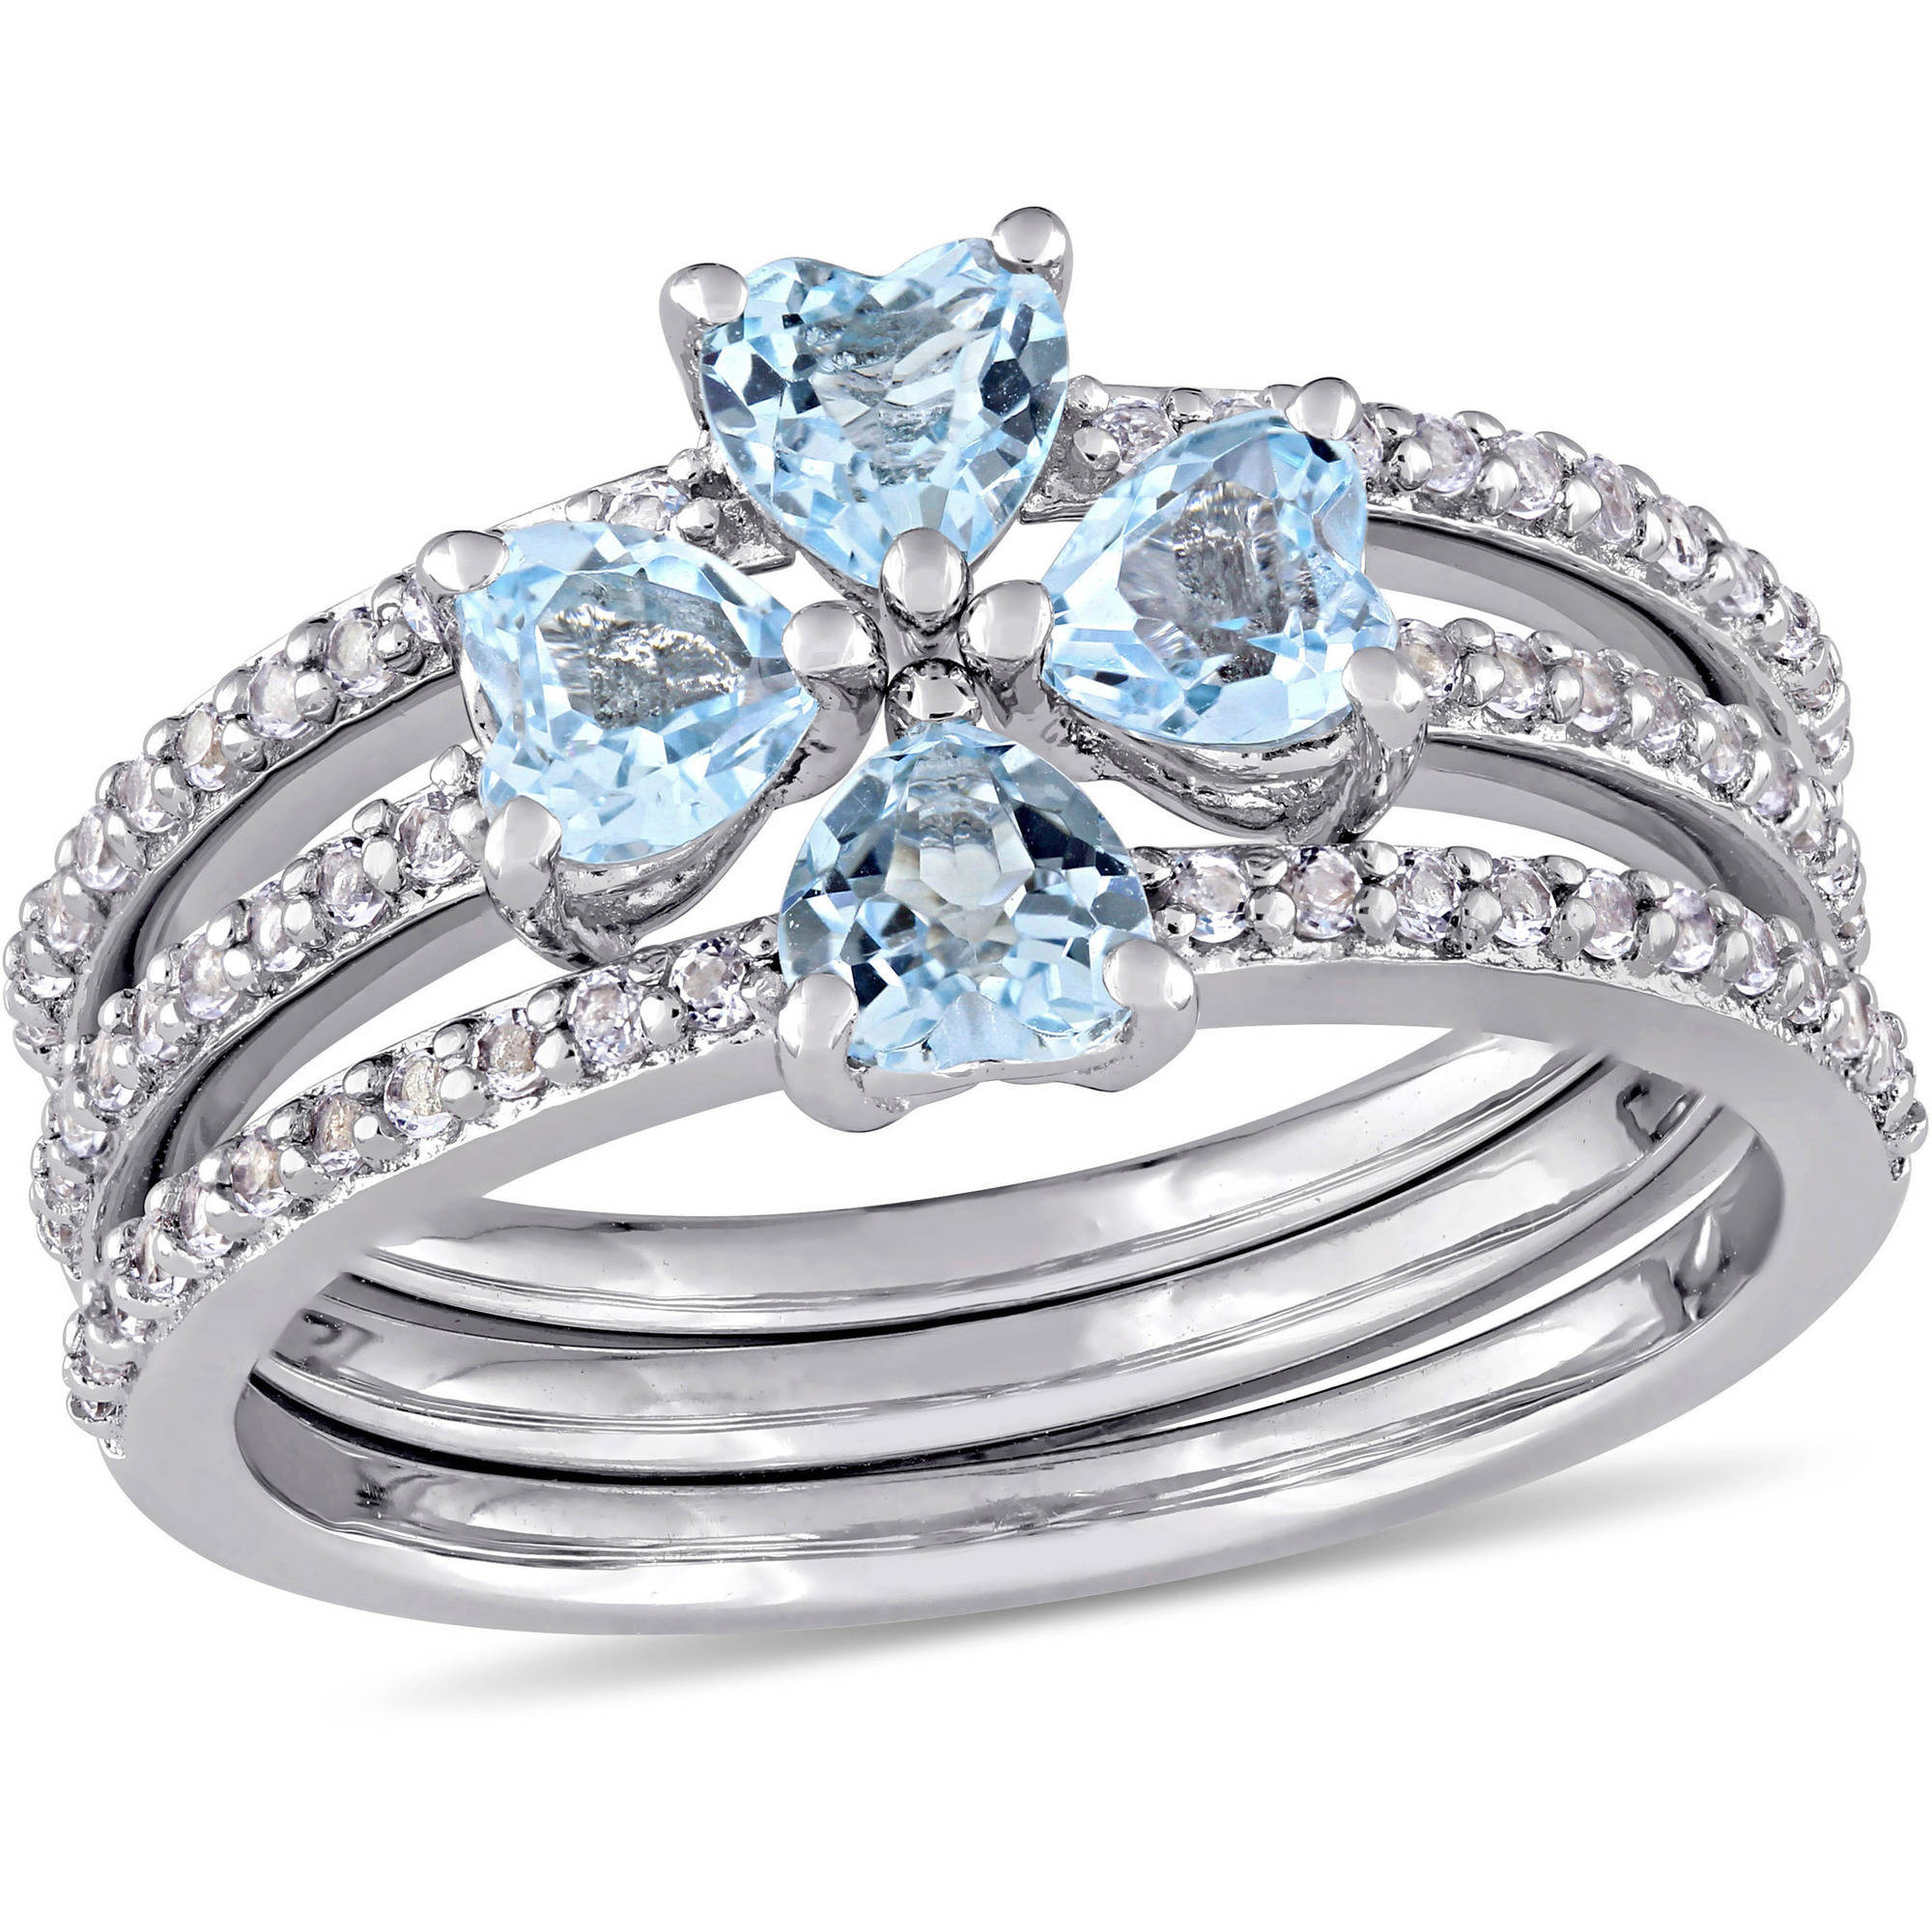 Tangelo 1-1 2 Carat T.G.W. Heart-Cut Sky Blue and White Topaz Sterling Silver Floral Three-Piece Ring Set by Tangelo